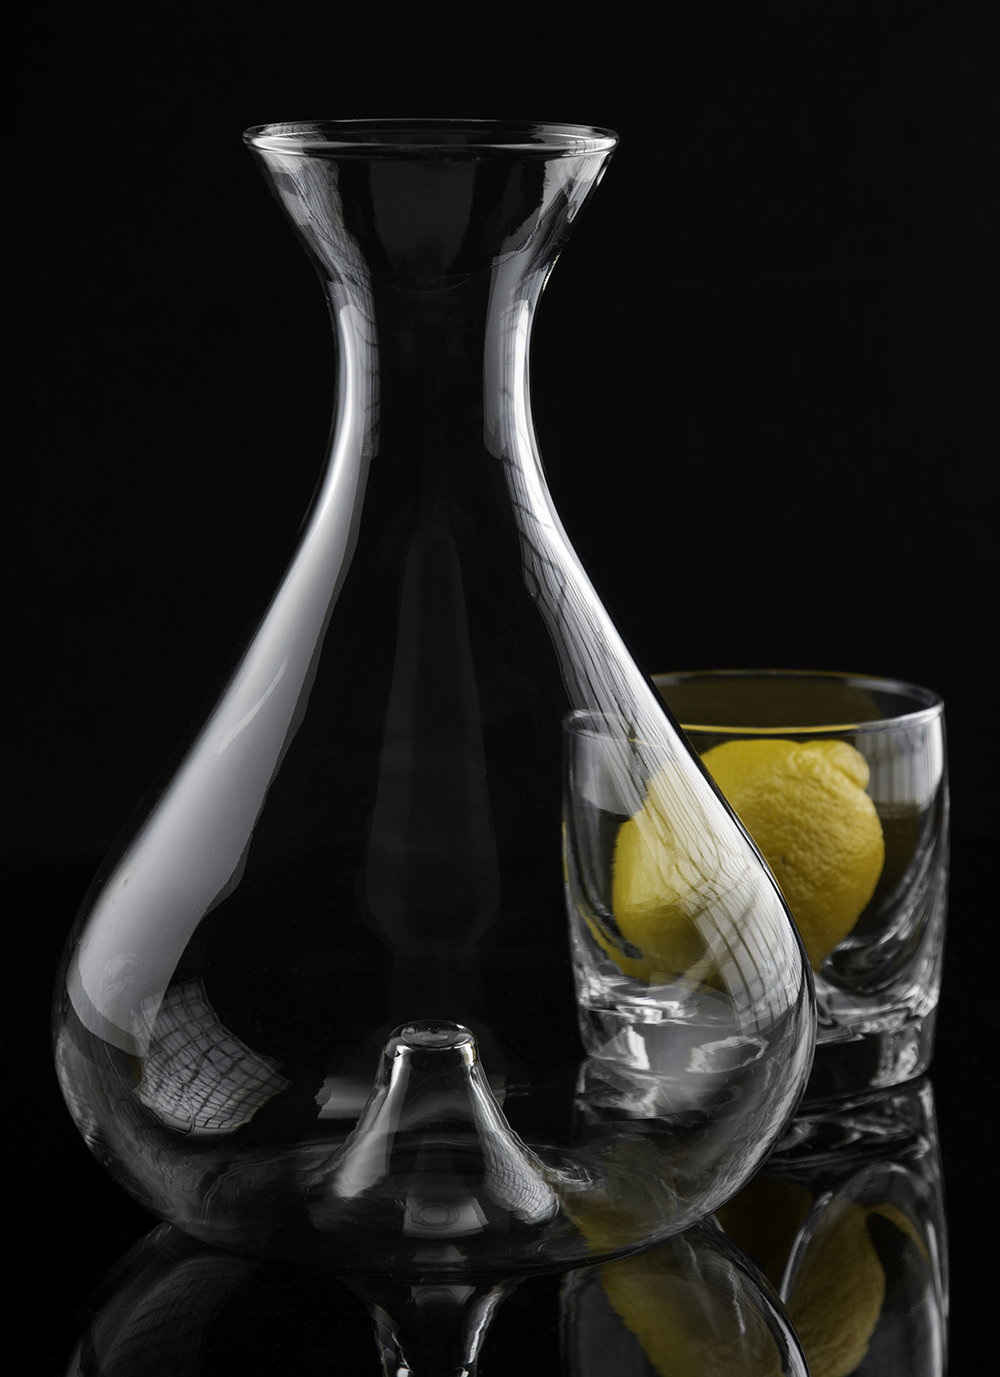 Final Glassware Image